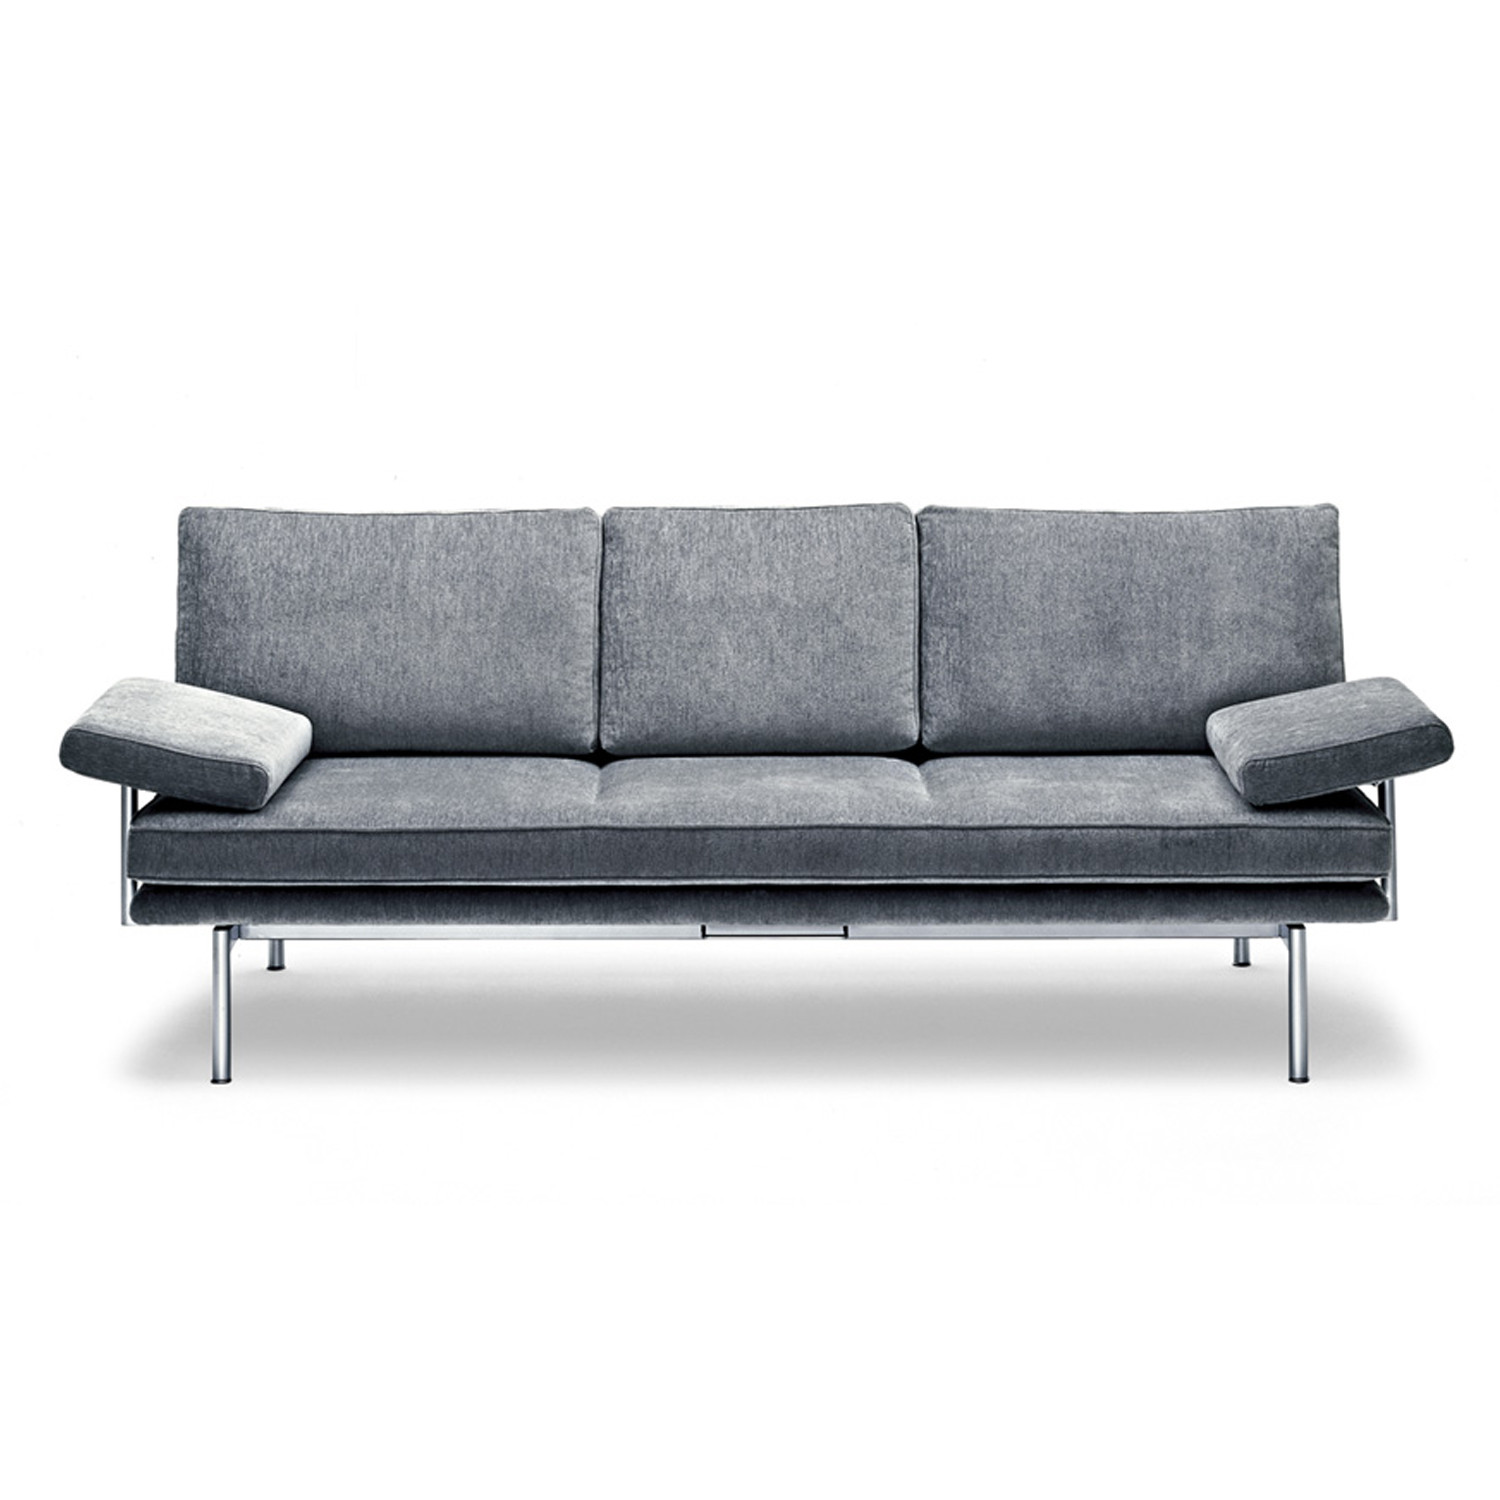 Living Platform Office Sofa